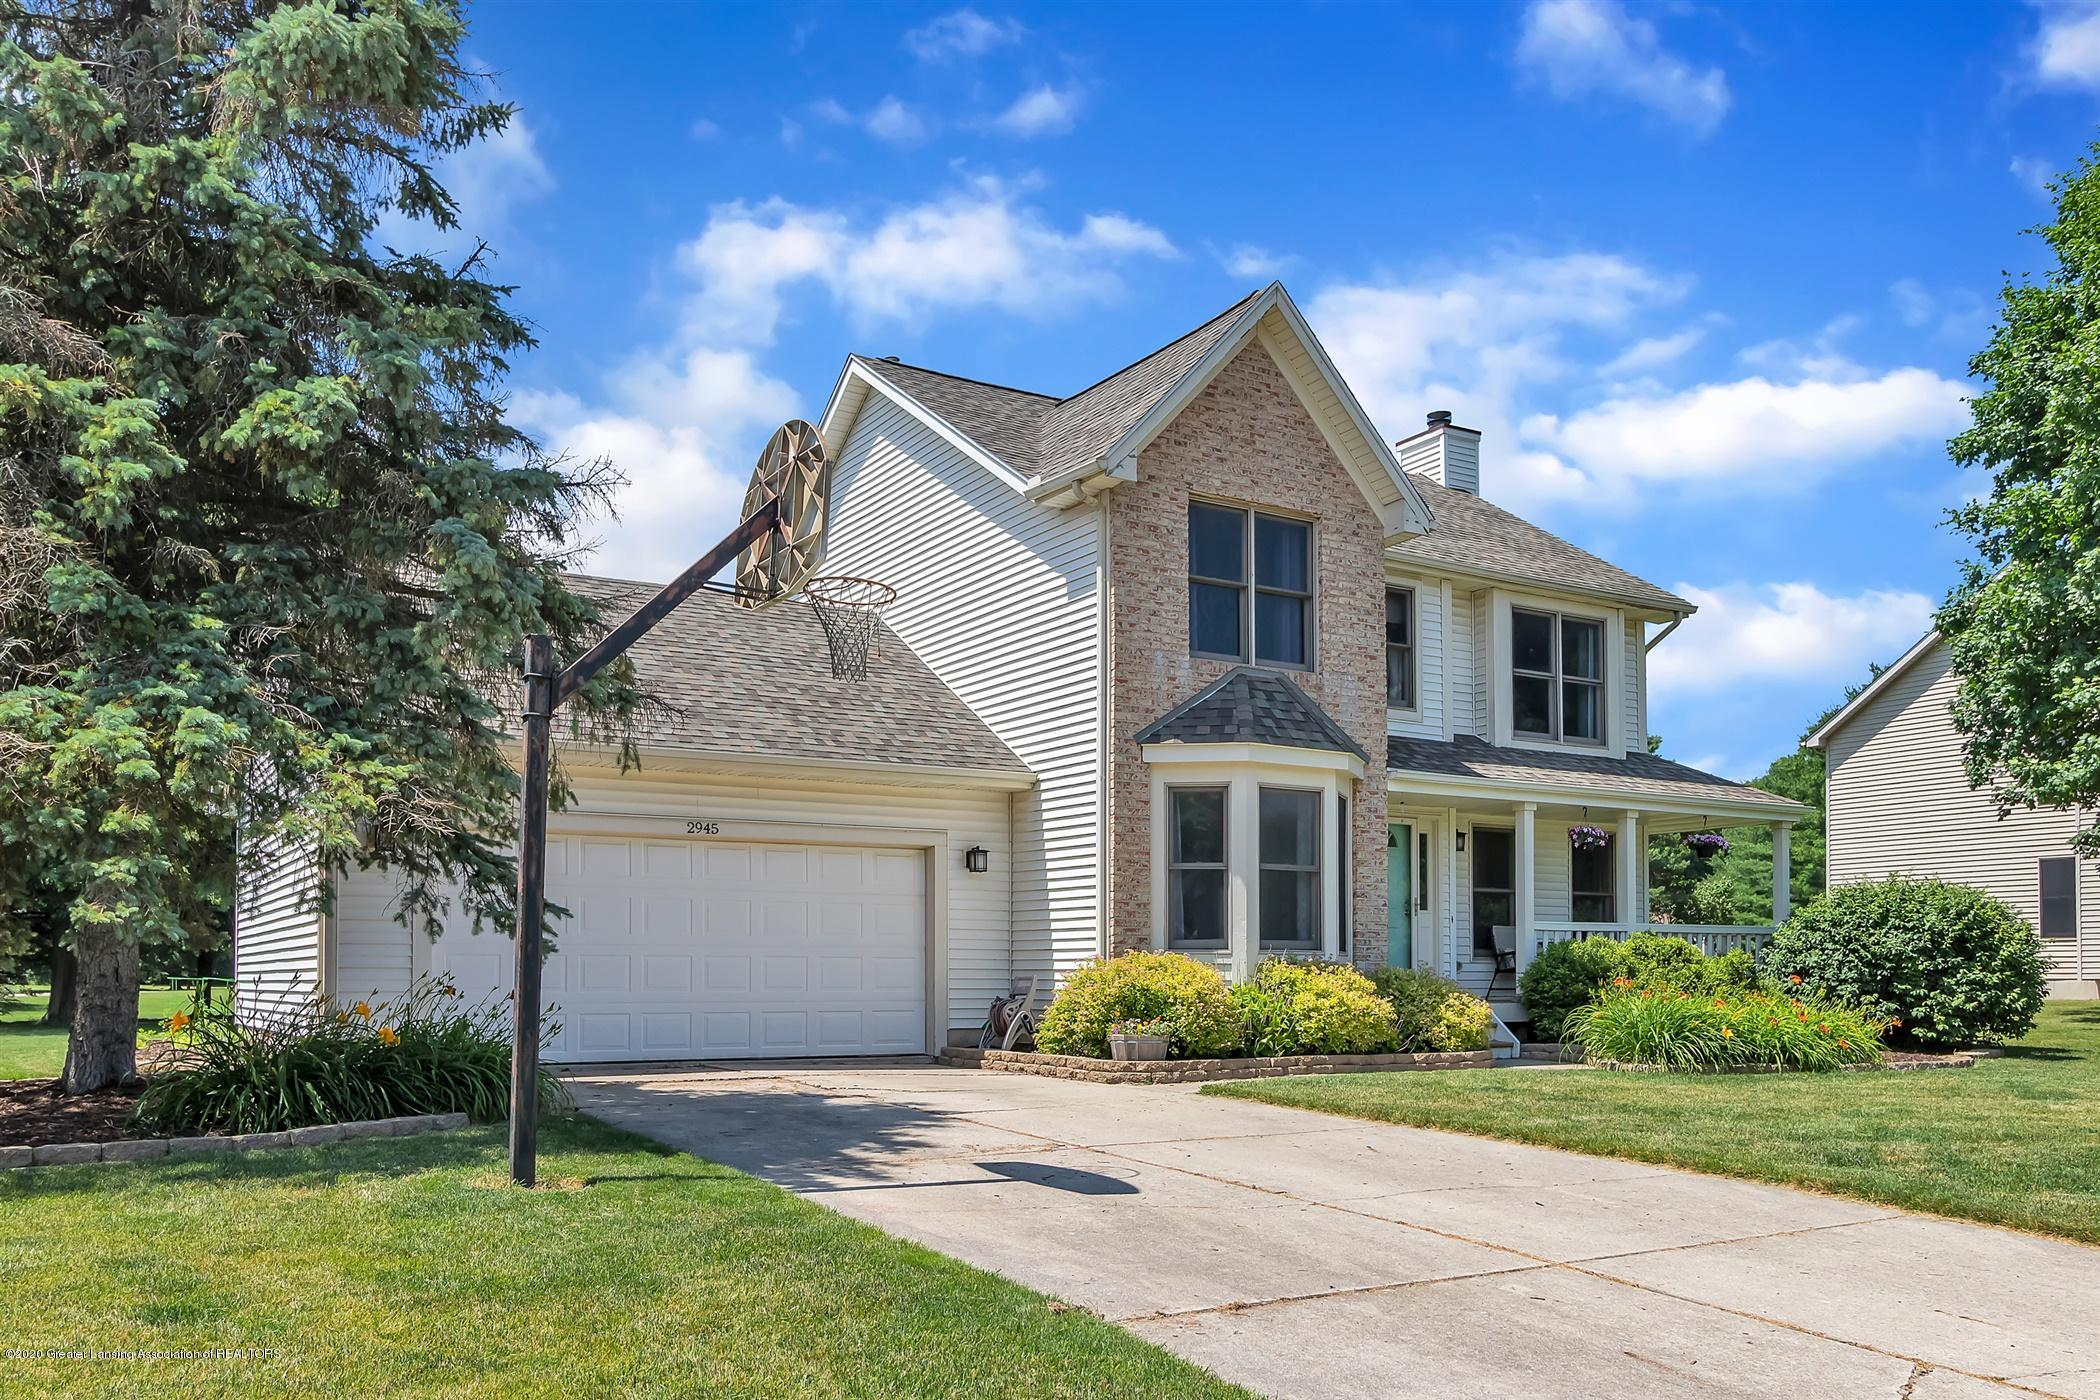 2945 Whistlewood Way - 02-2945Whistlewood-WindowStill-Real - 2